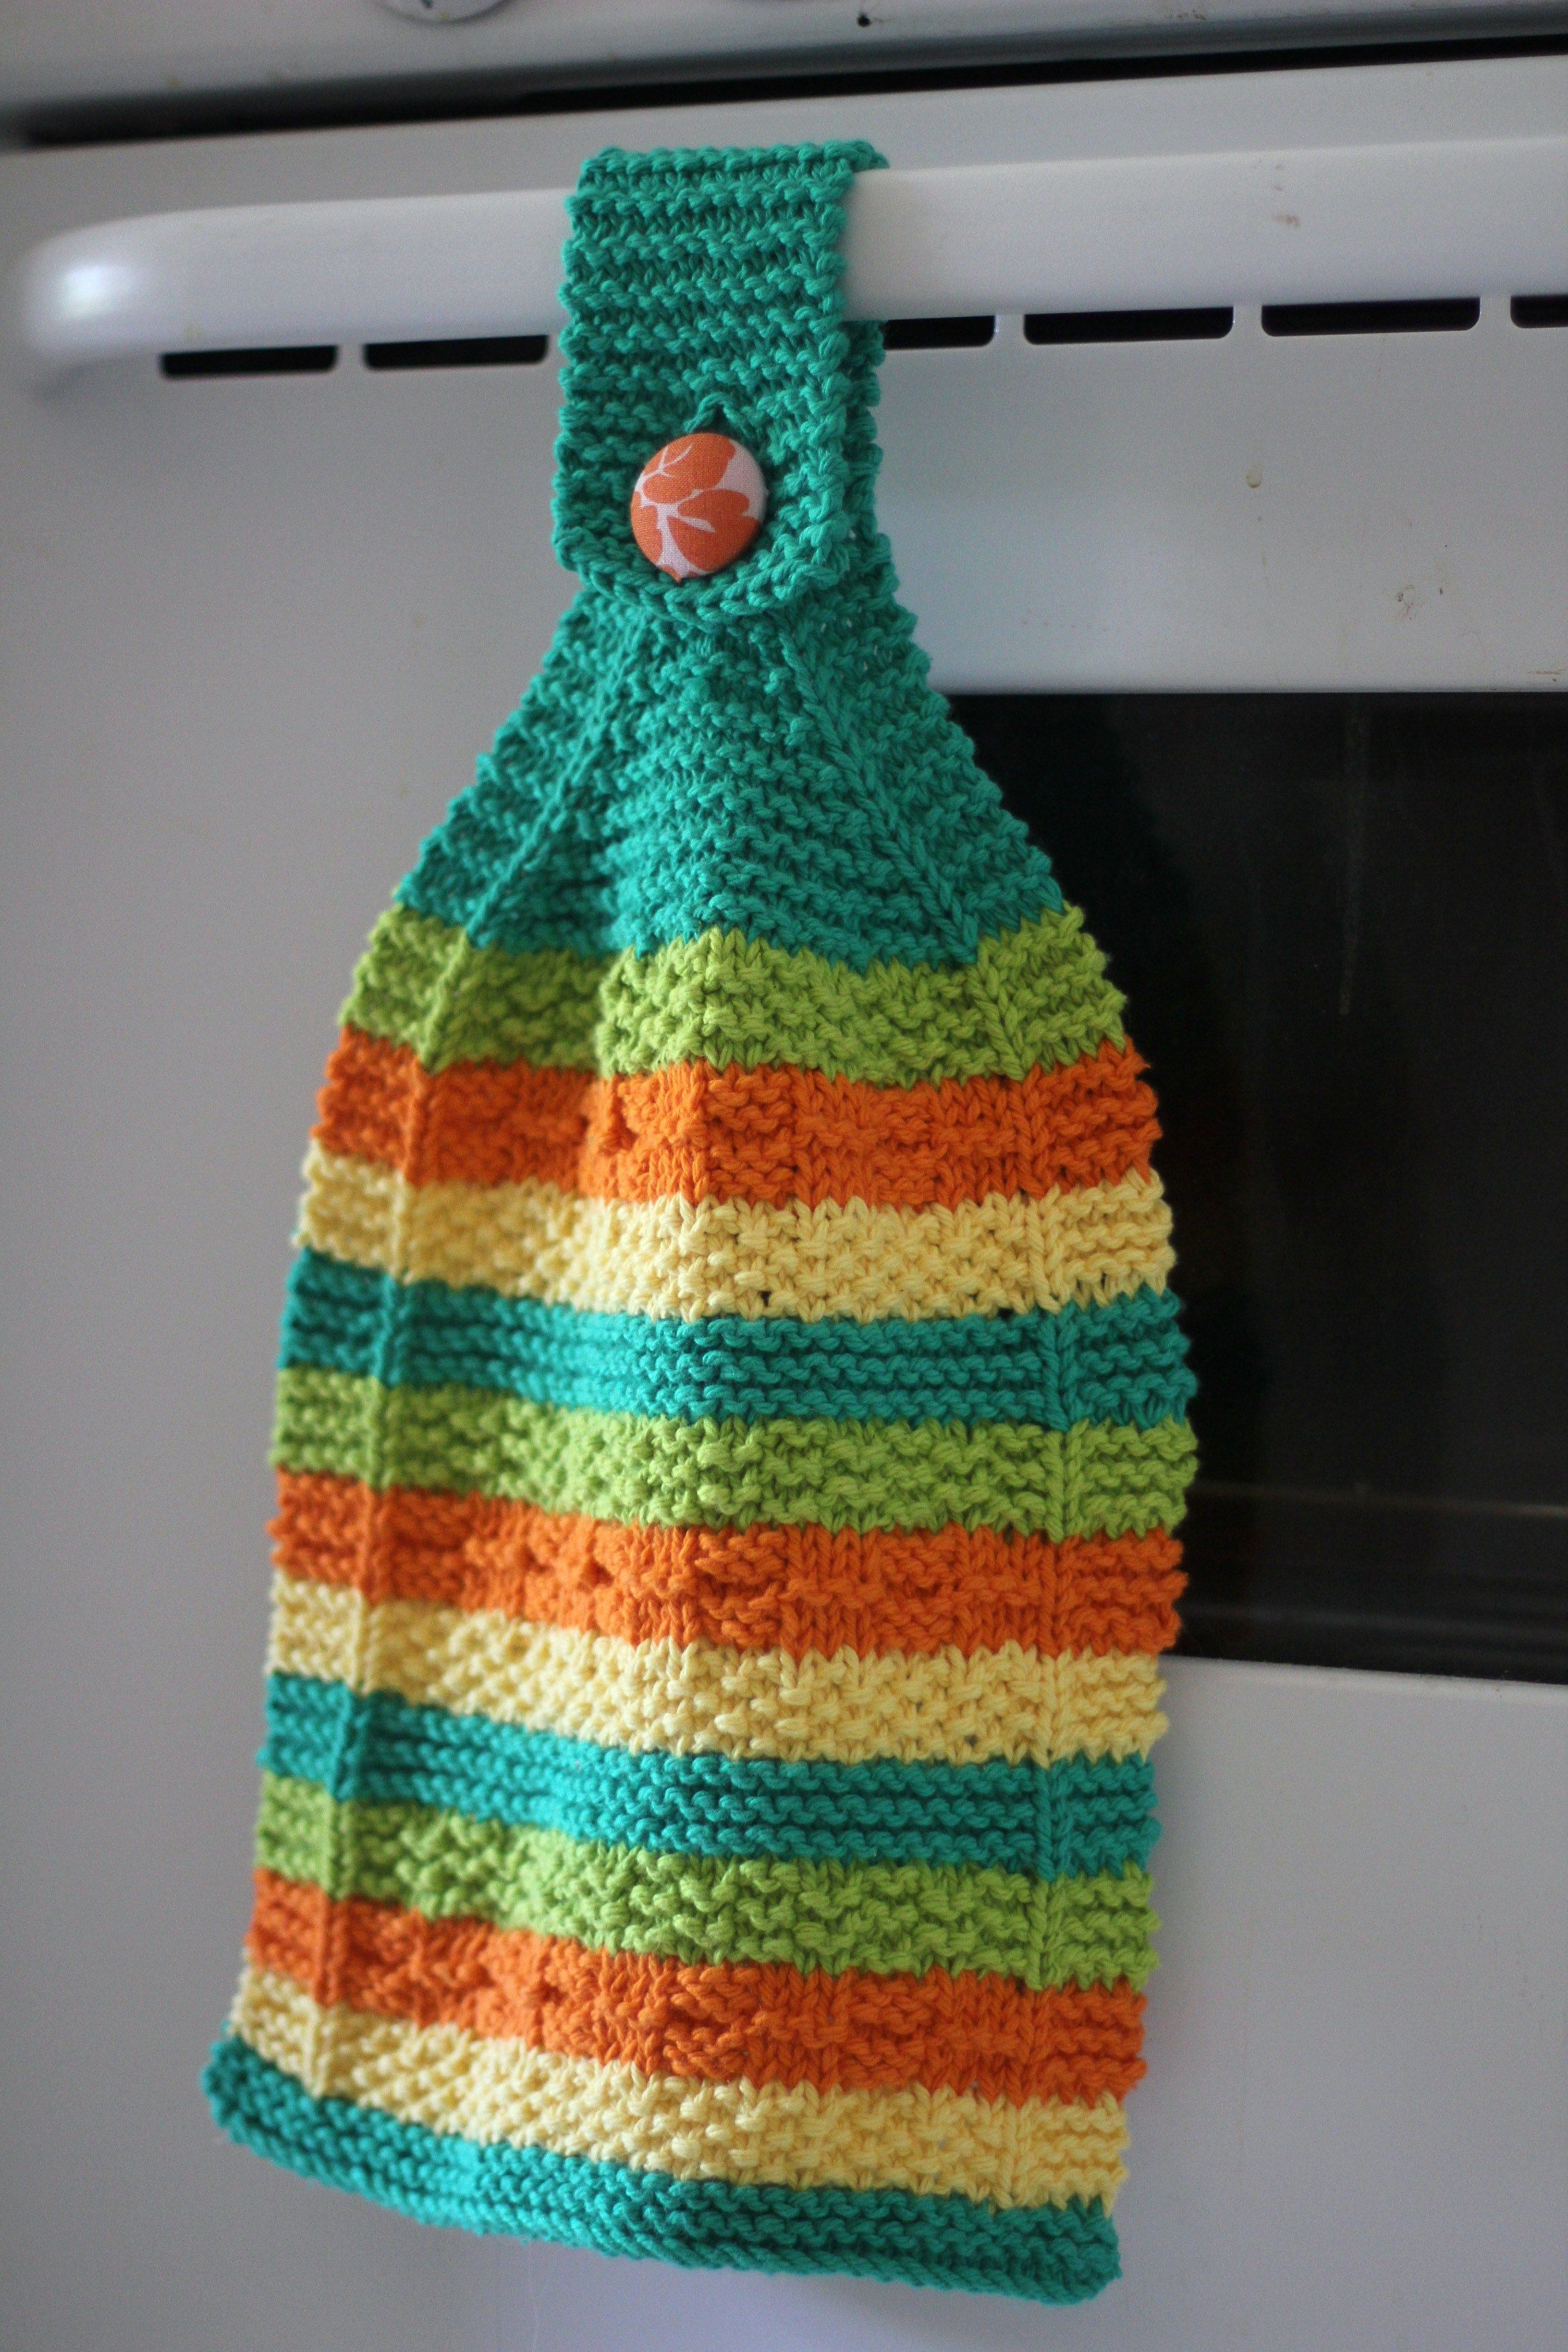 Hanging Dish Towel Knitting Pattern Kitchen Crochet Dishcloths